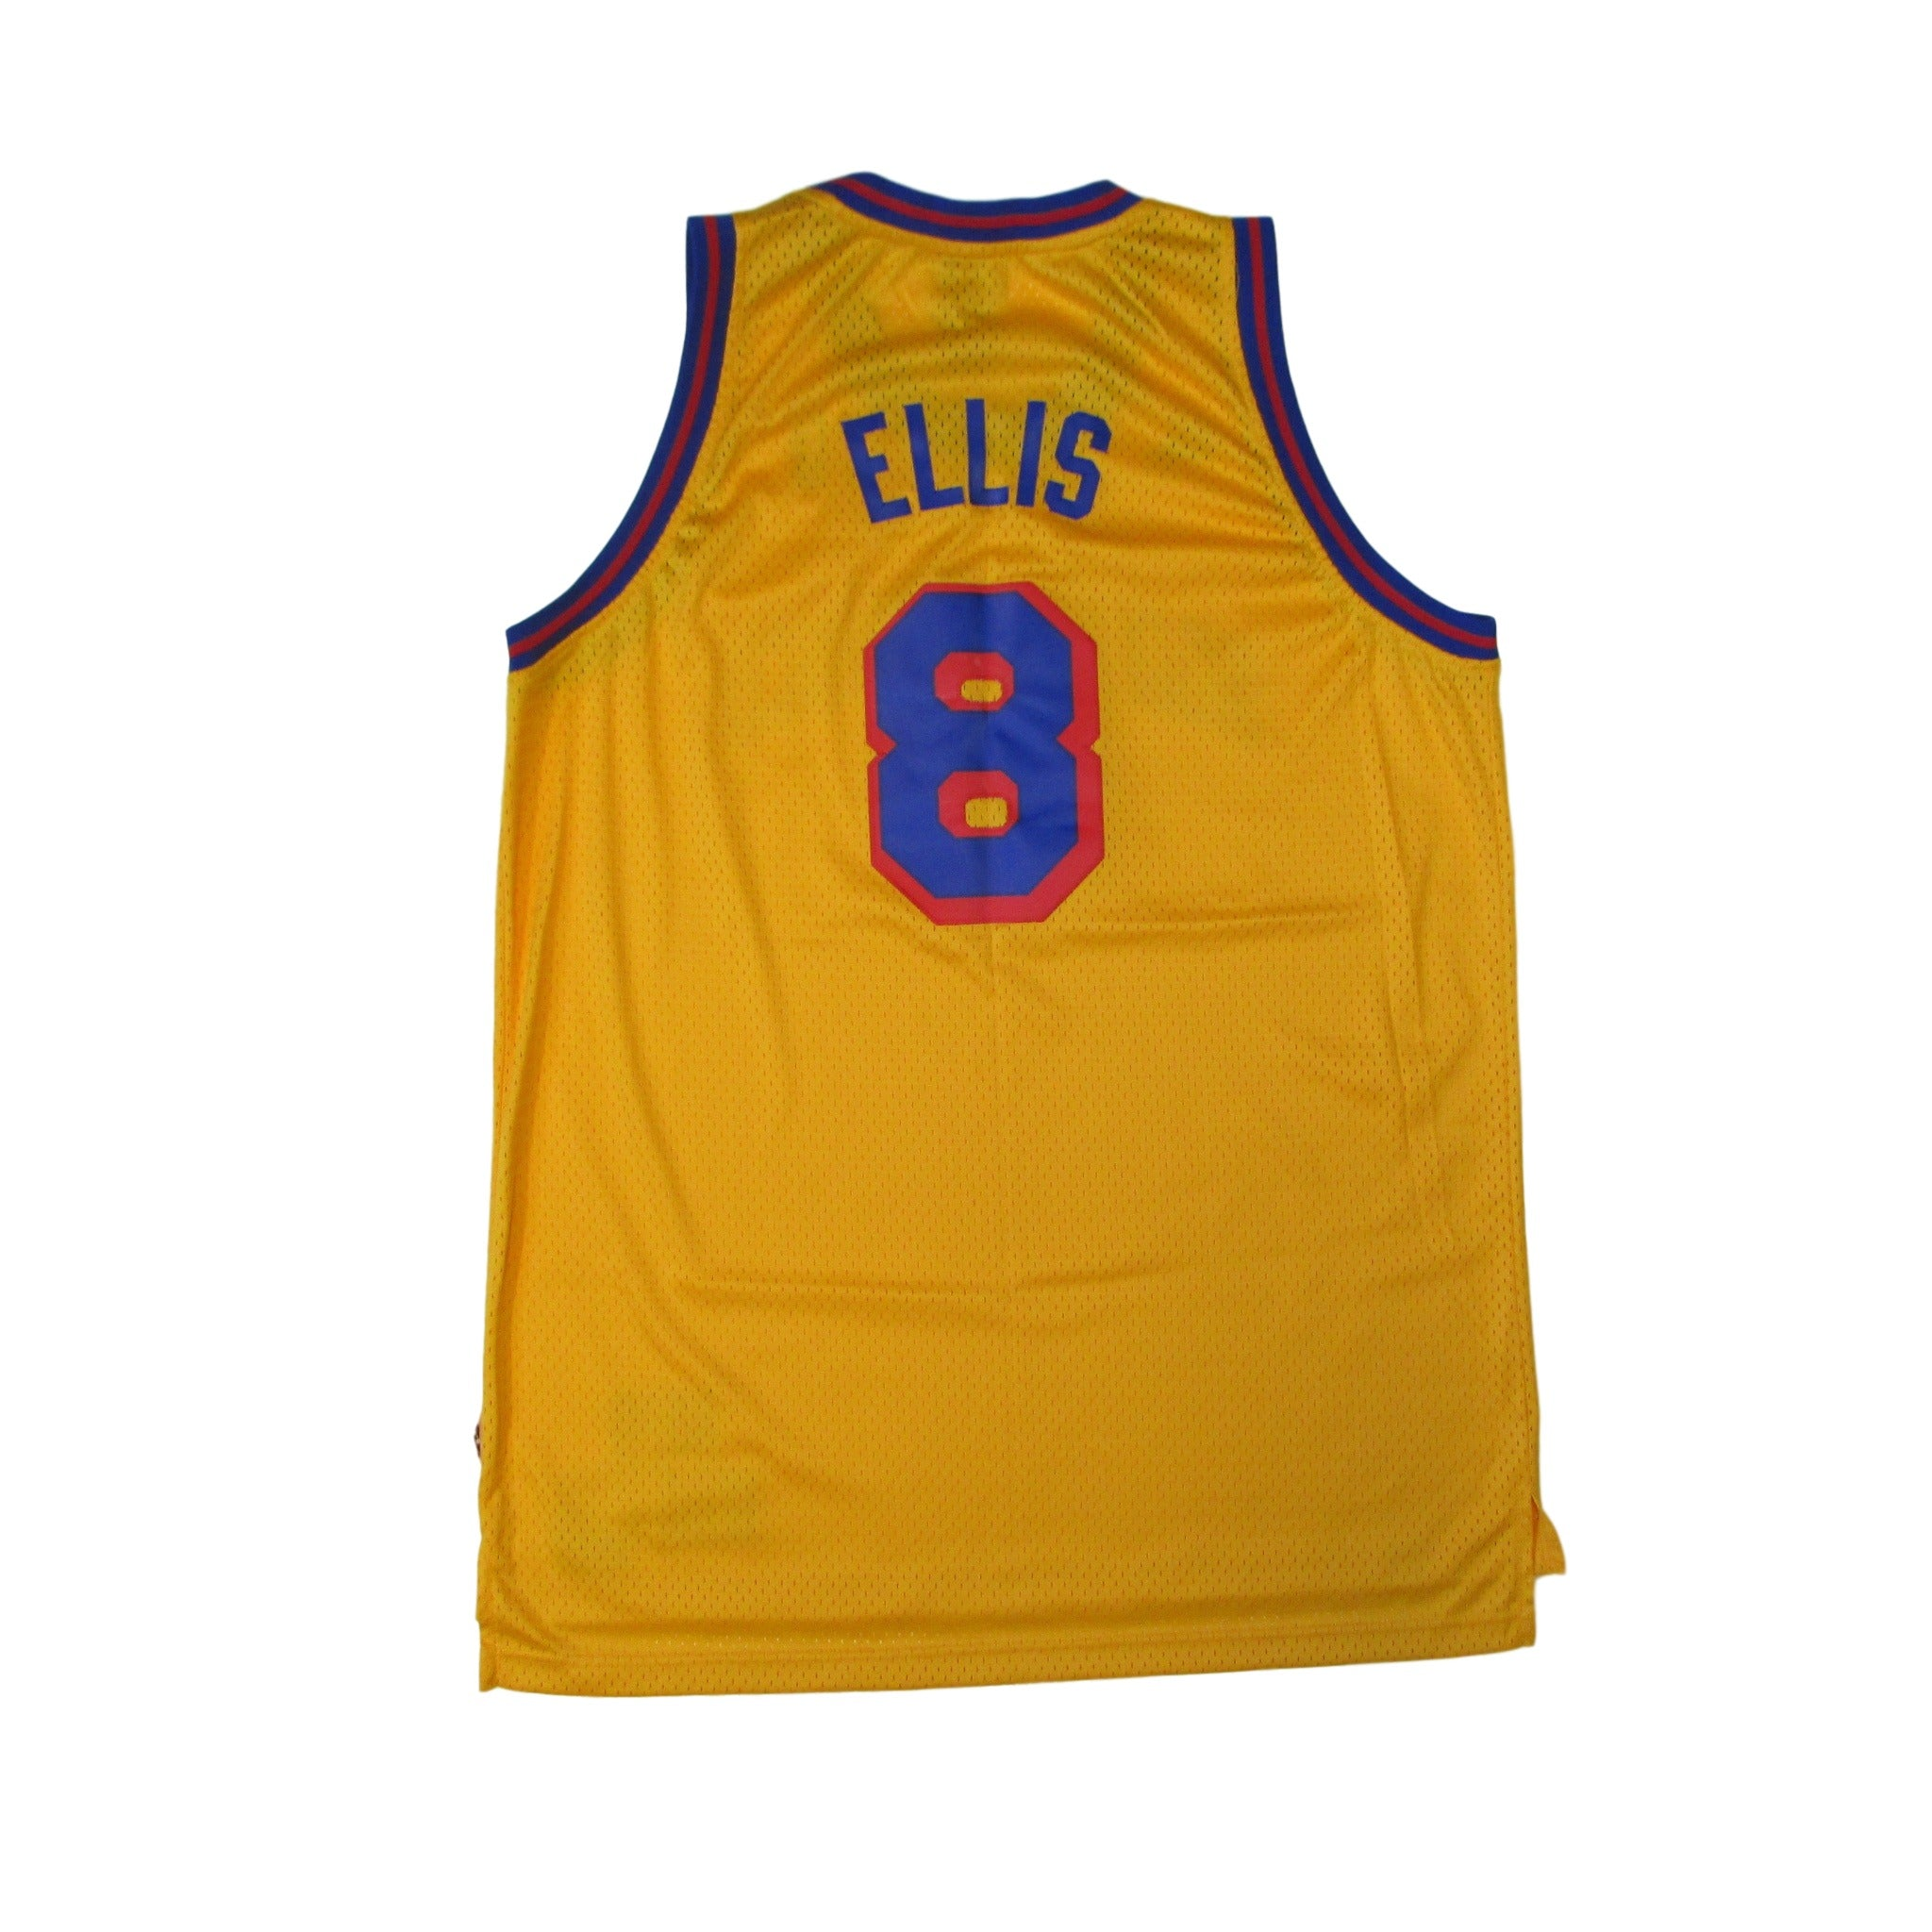 88f86dafa San francisco warriors monta ellis basketball jersey hardwood classics ...